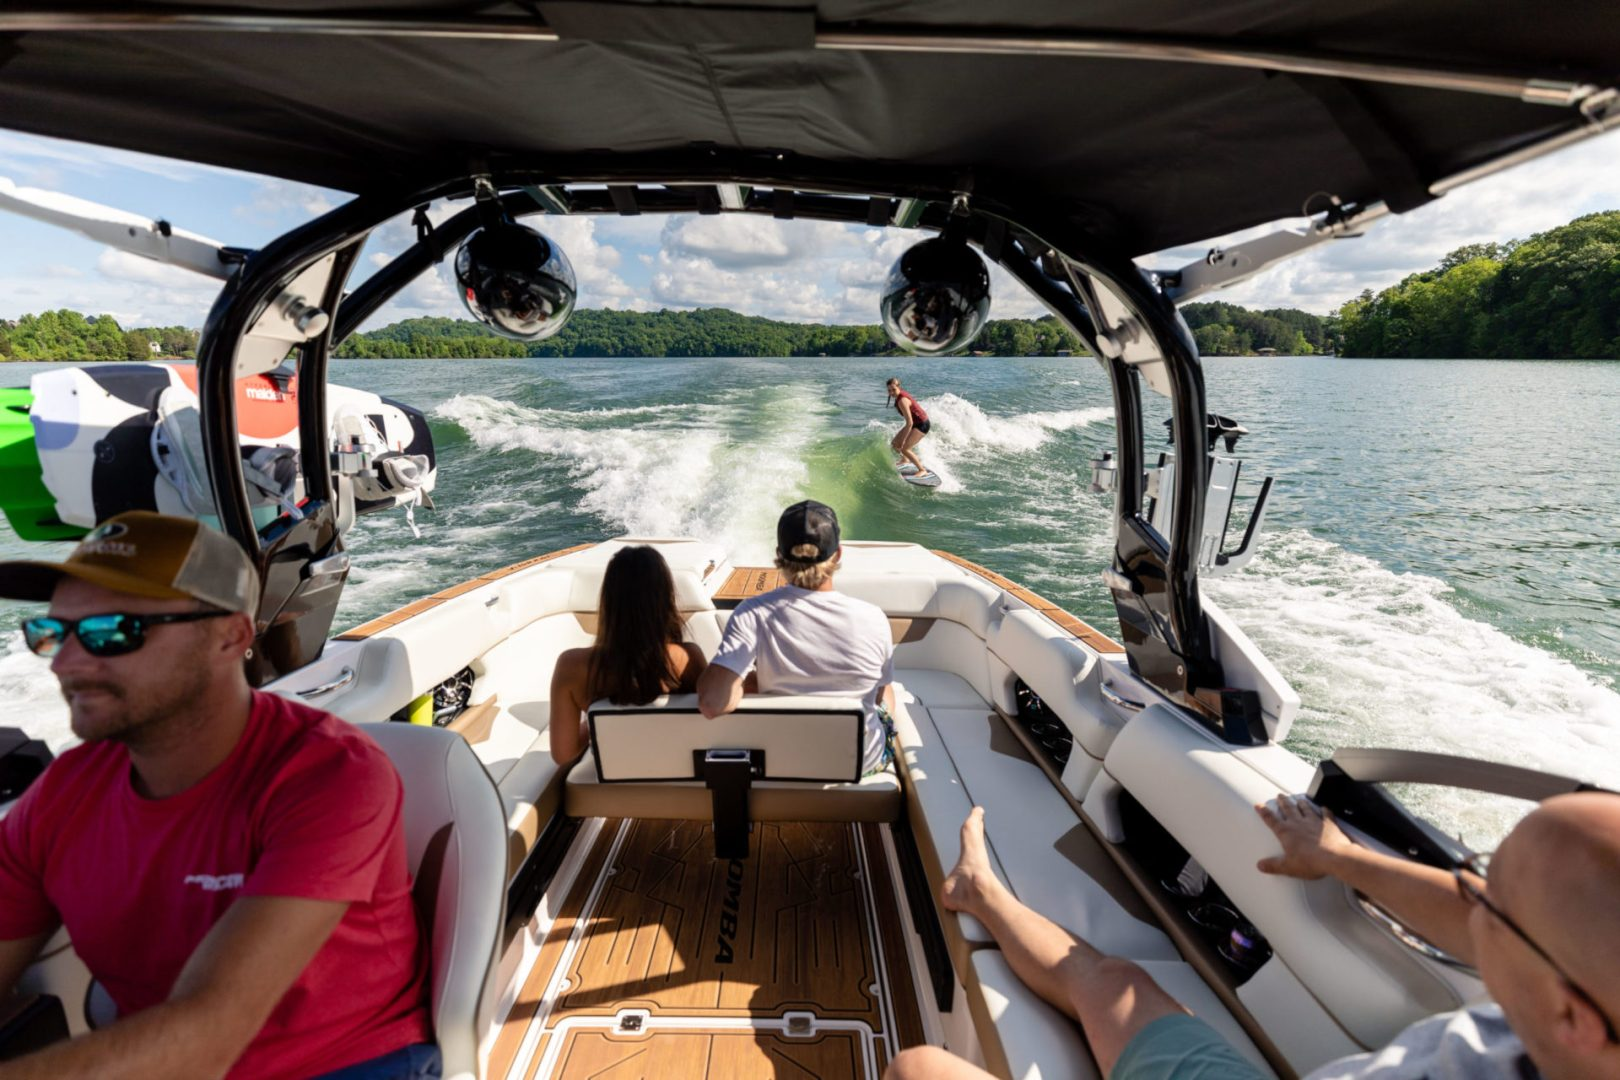 Our convertible sliding rear seat is a standard in every Moomba wake boat with an optional backrest for added comfort.